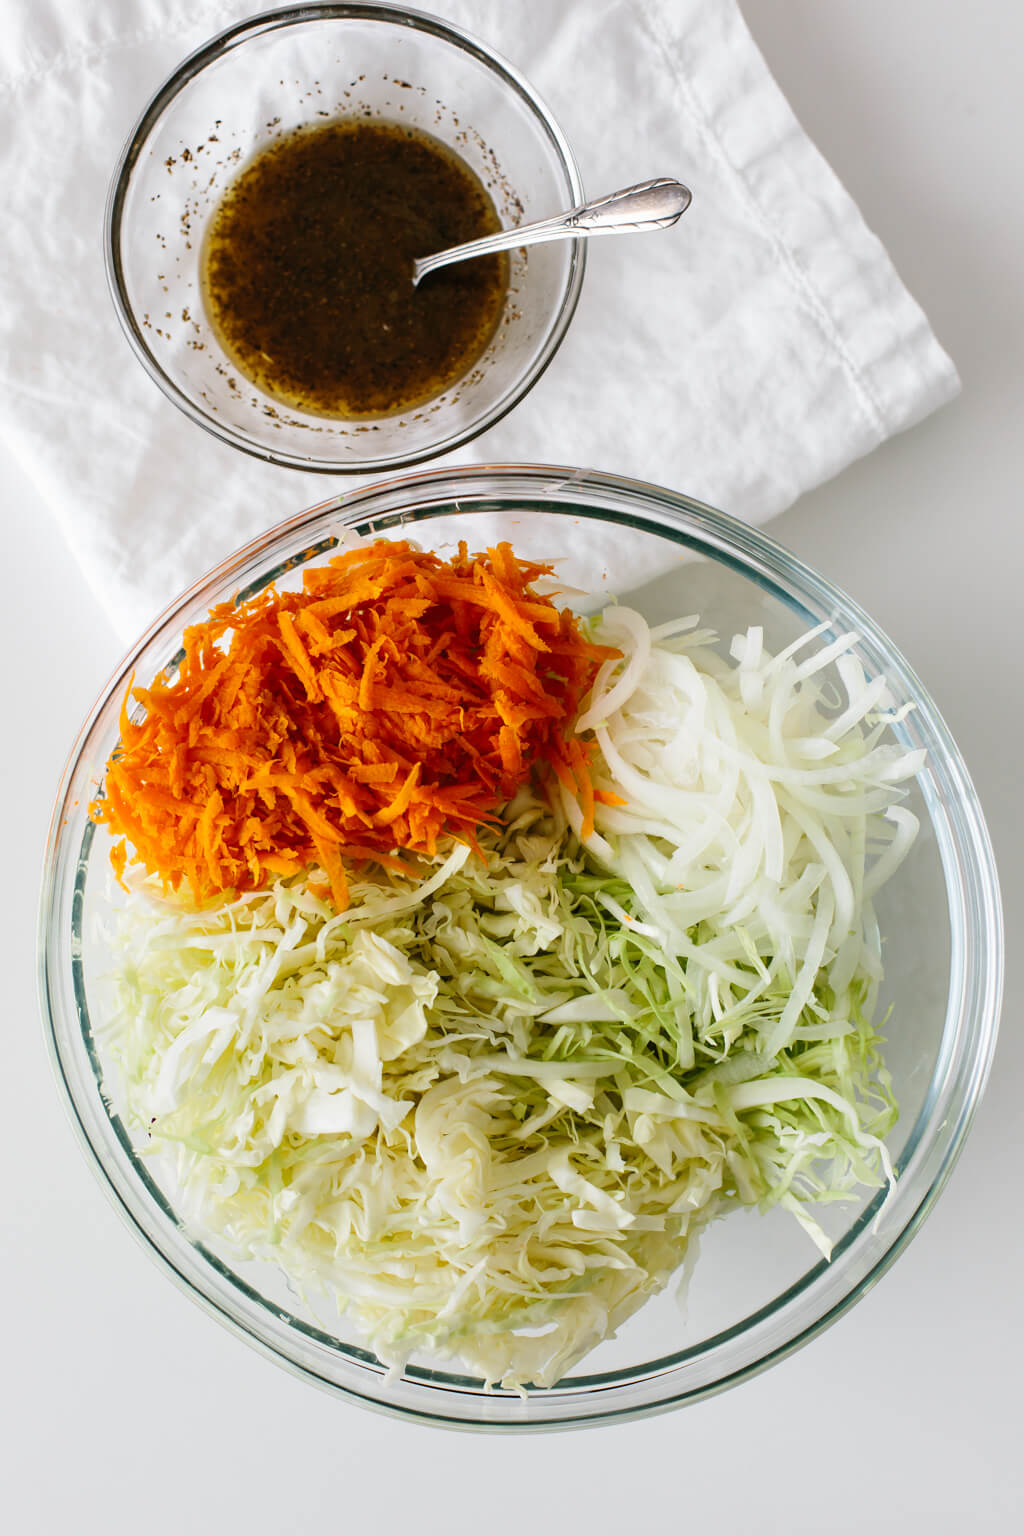 Vinegar coleslaw ingredients in a mixing bowl with dressing on the side.